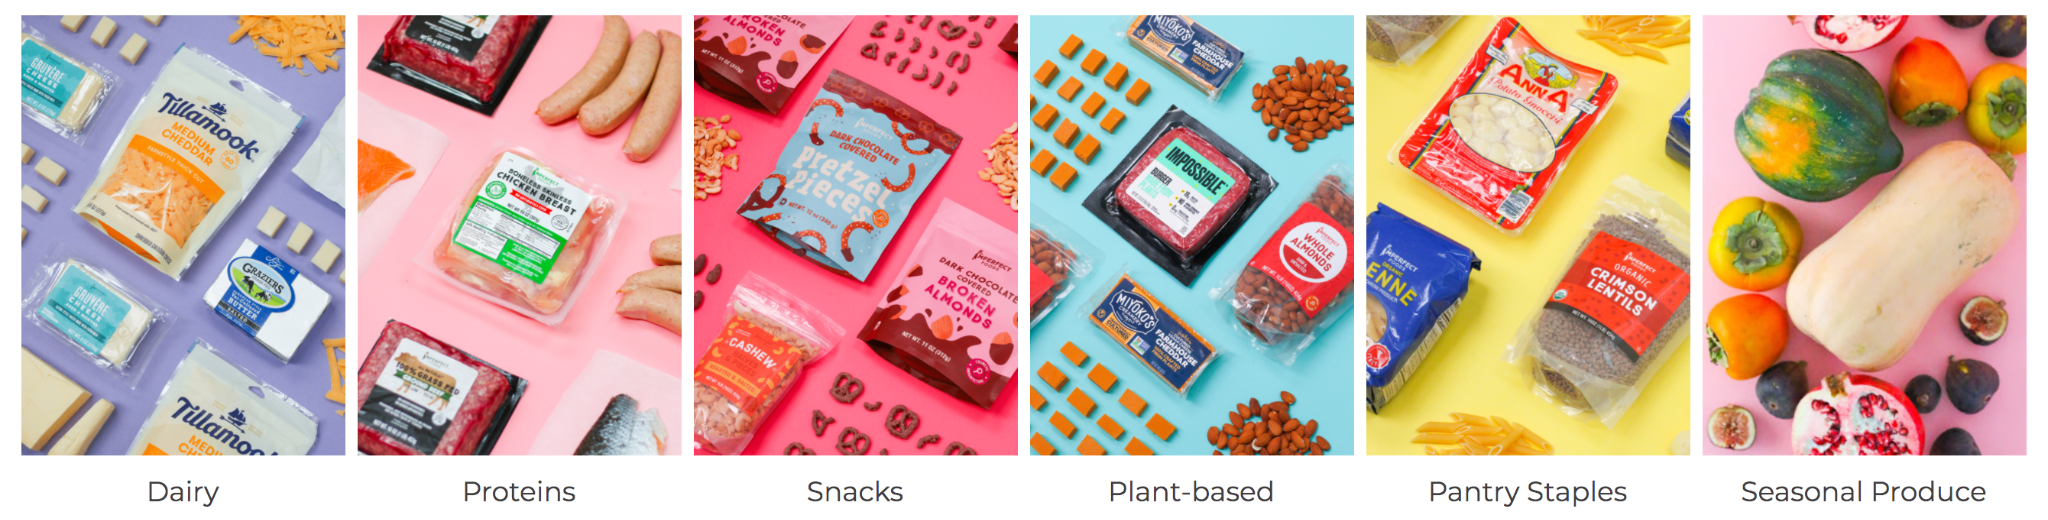 Imperfect Foods categories of Dairy, Proteins, Snacks, Plant-based, Pantry Staples & Seasonal Produce